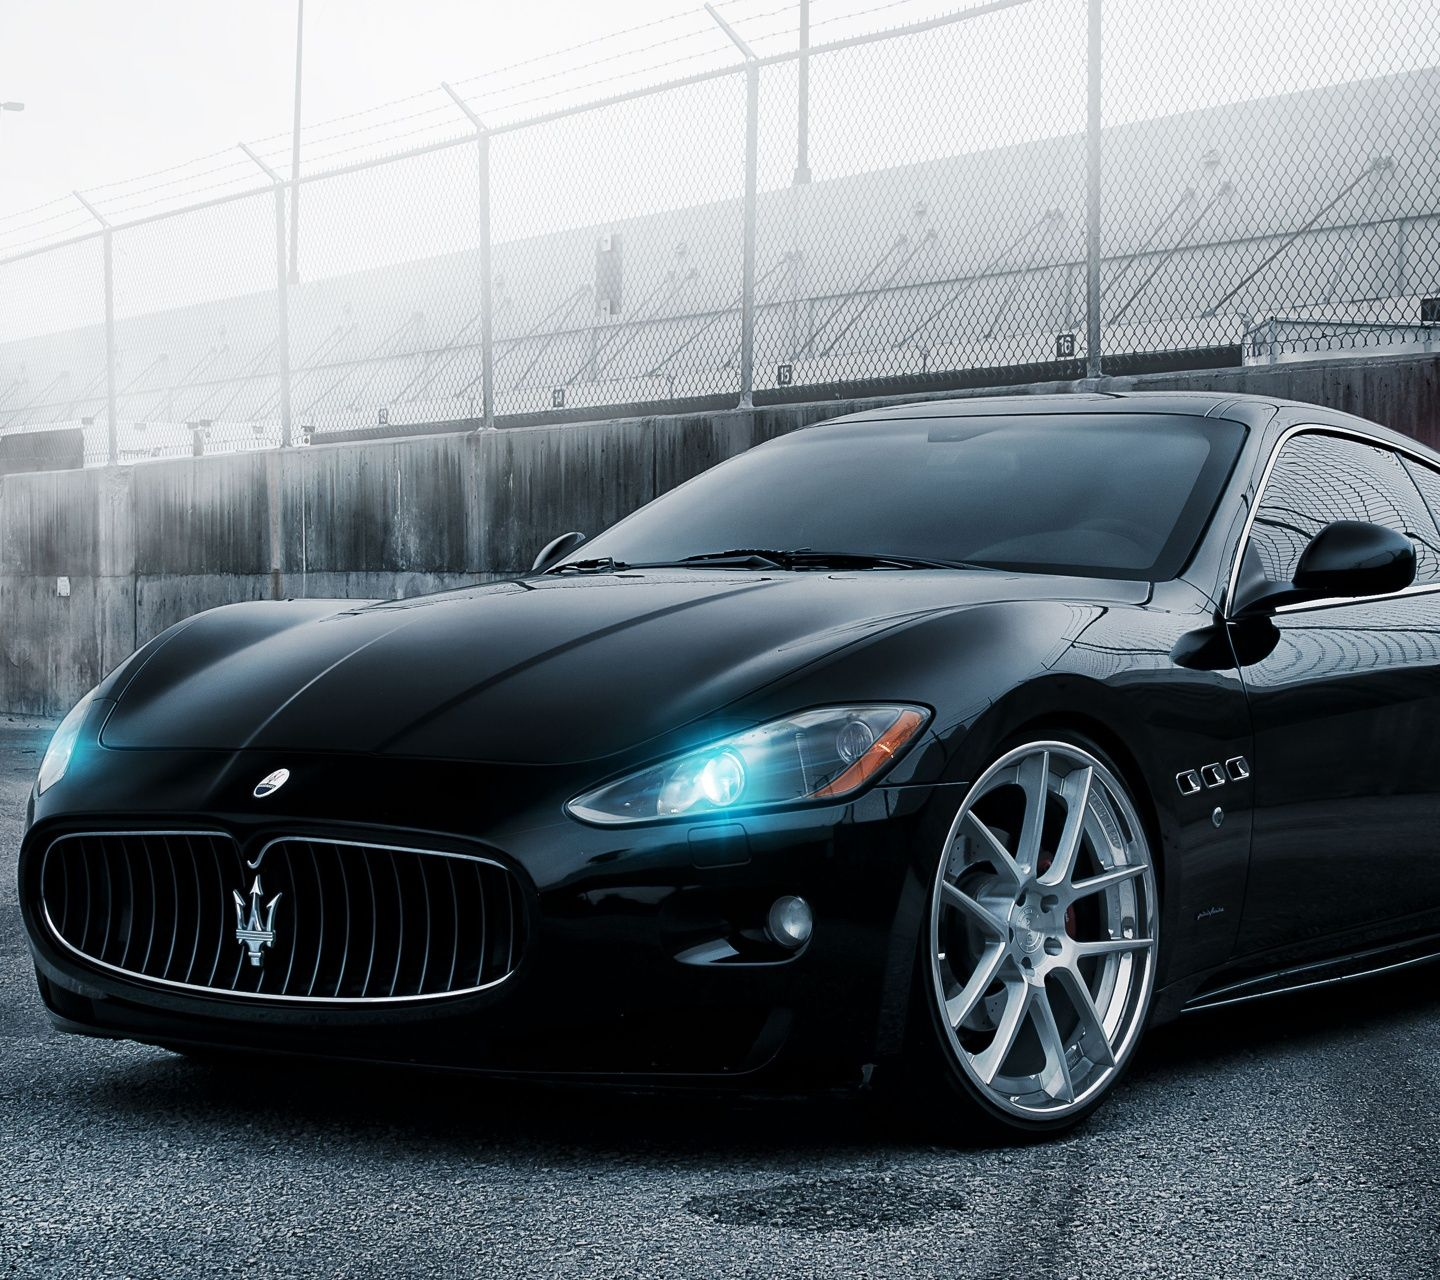 Italian Luxury Cars Maserati Granturismo When In The Company Of U201cMaseratiu201d  It Comes Down To, To Give The New Car A Name, Developers Somehow Refuses  Fantasy.